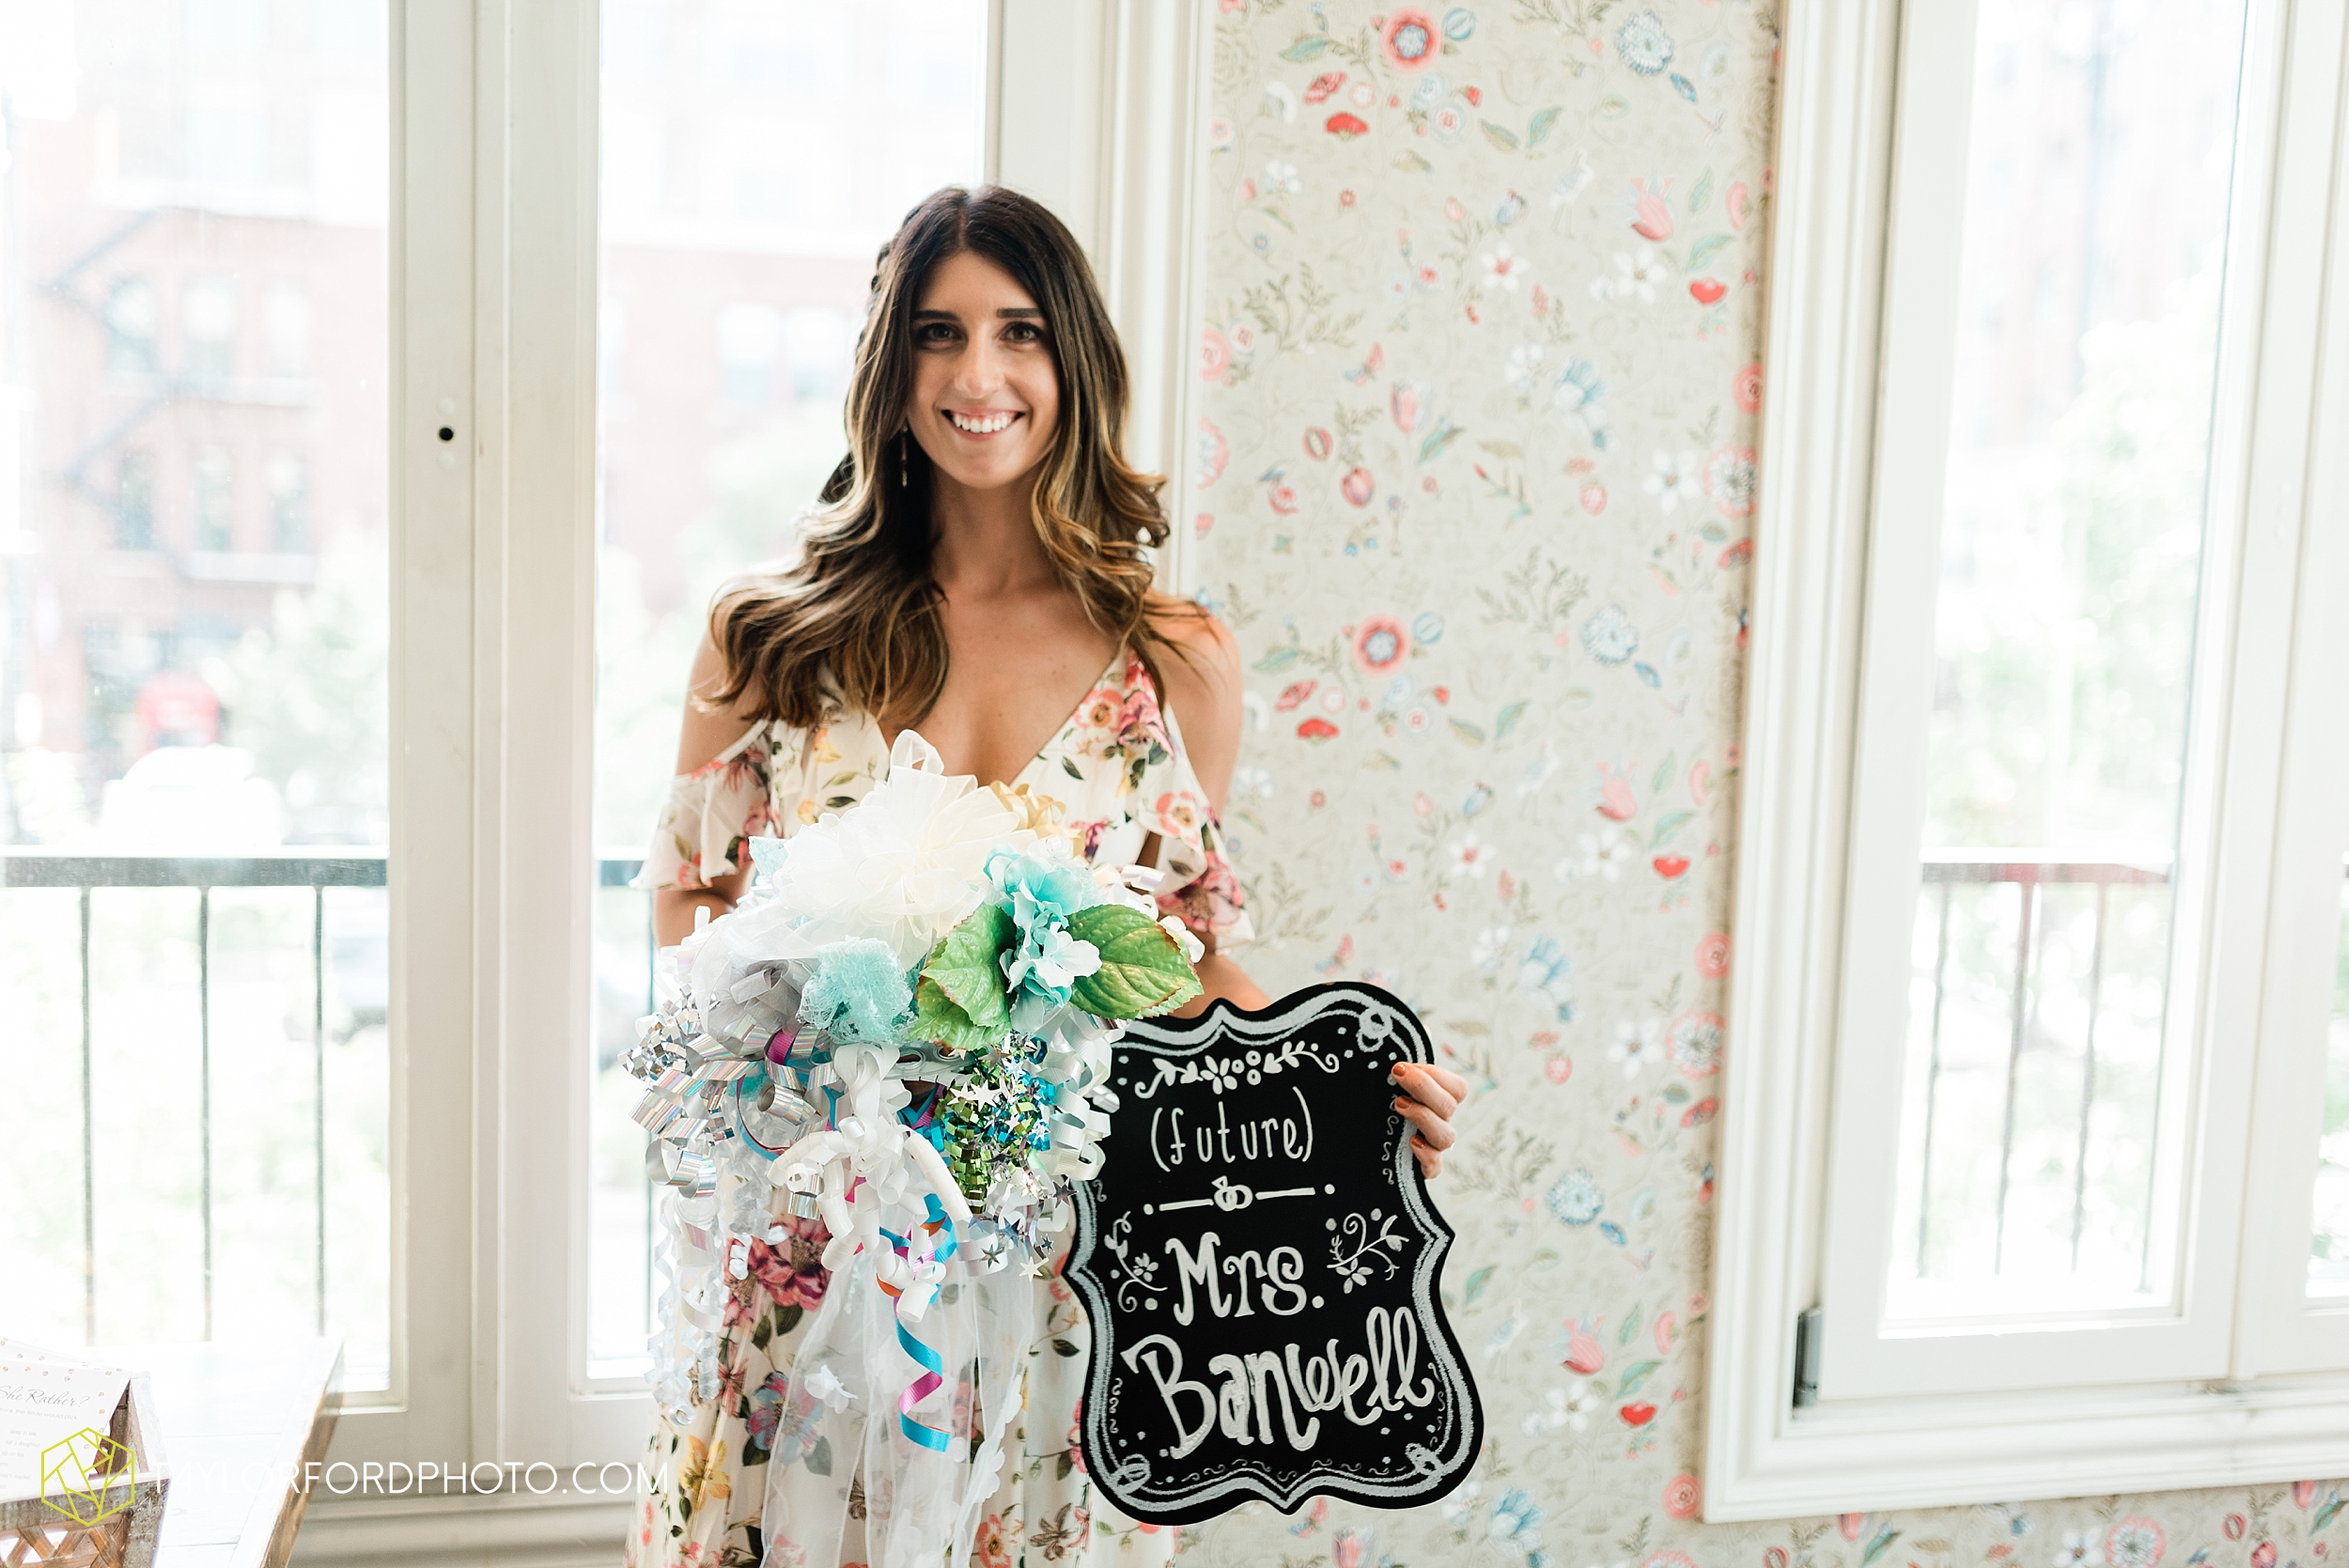 chicago-illinois-bridal-shower-little-goat-diner-west-loop-wedding-photographer-taylor-ford-photographer_8861.jpg